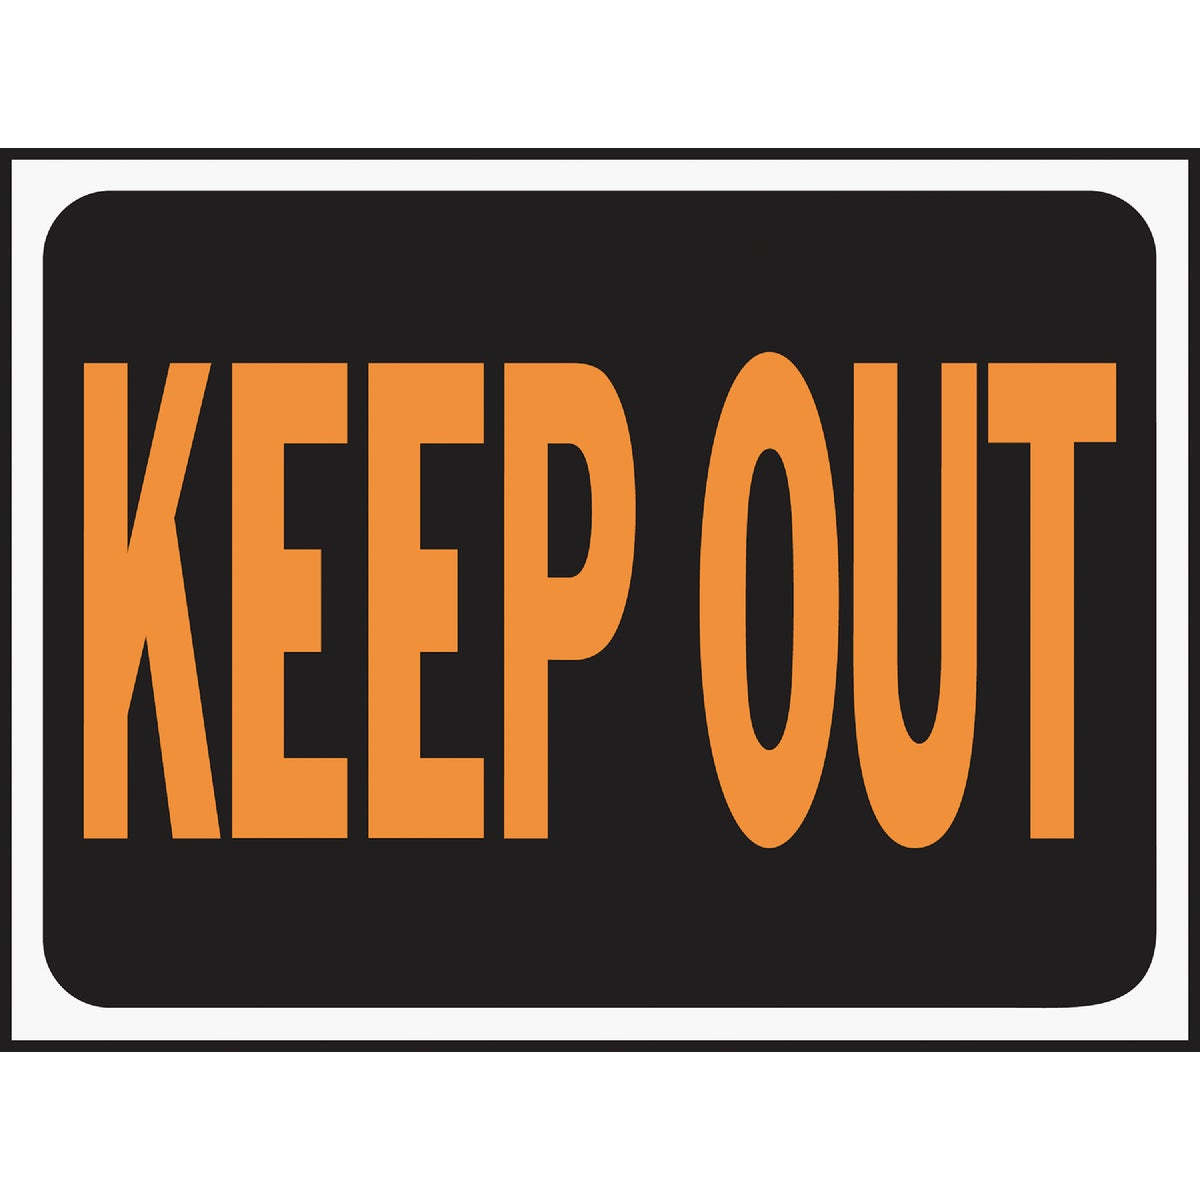 9X12 KEEP OUT SIGN